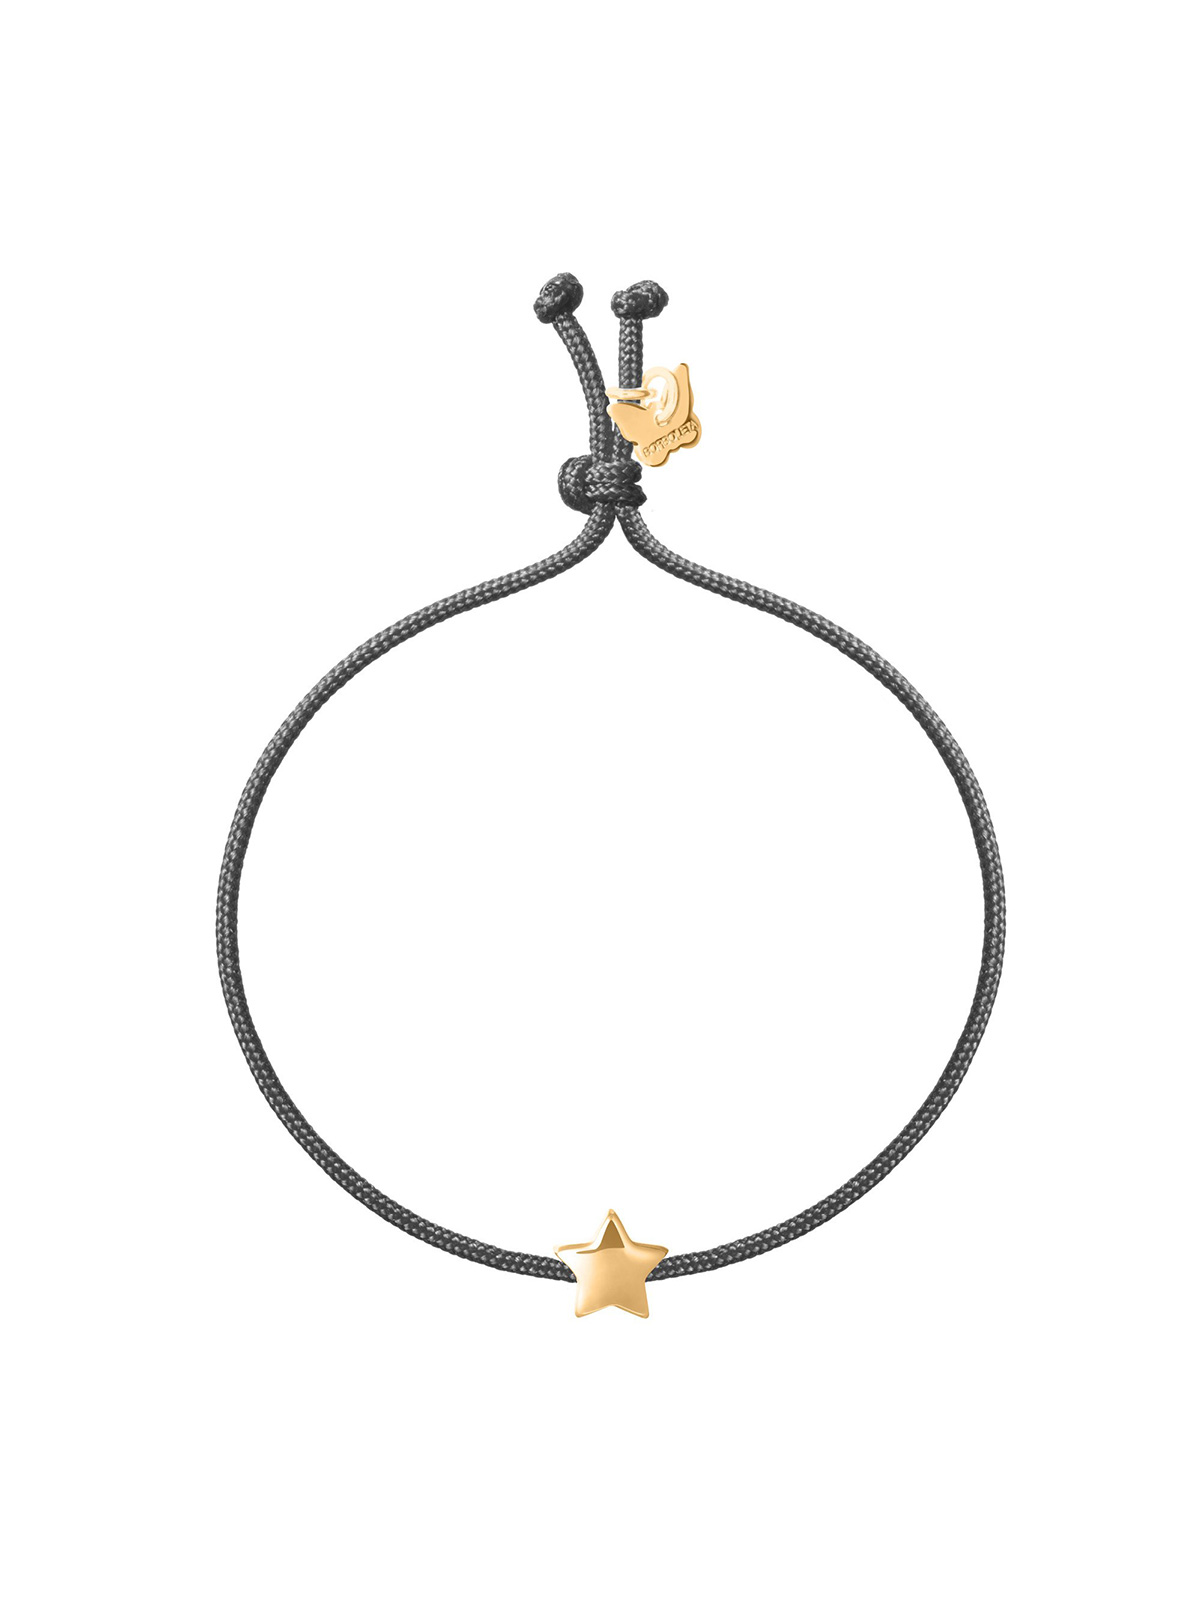 BUBBLE STAR BRACELET